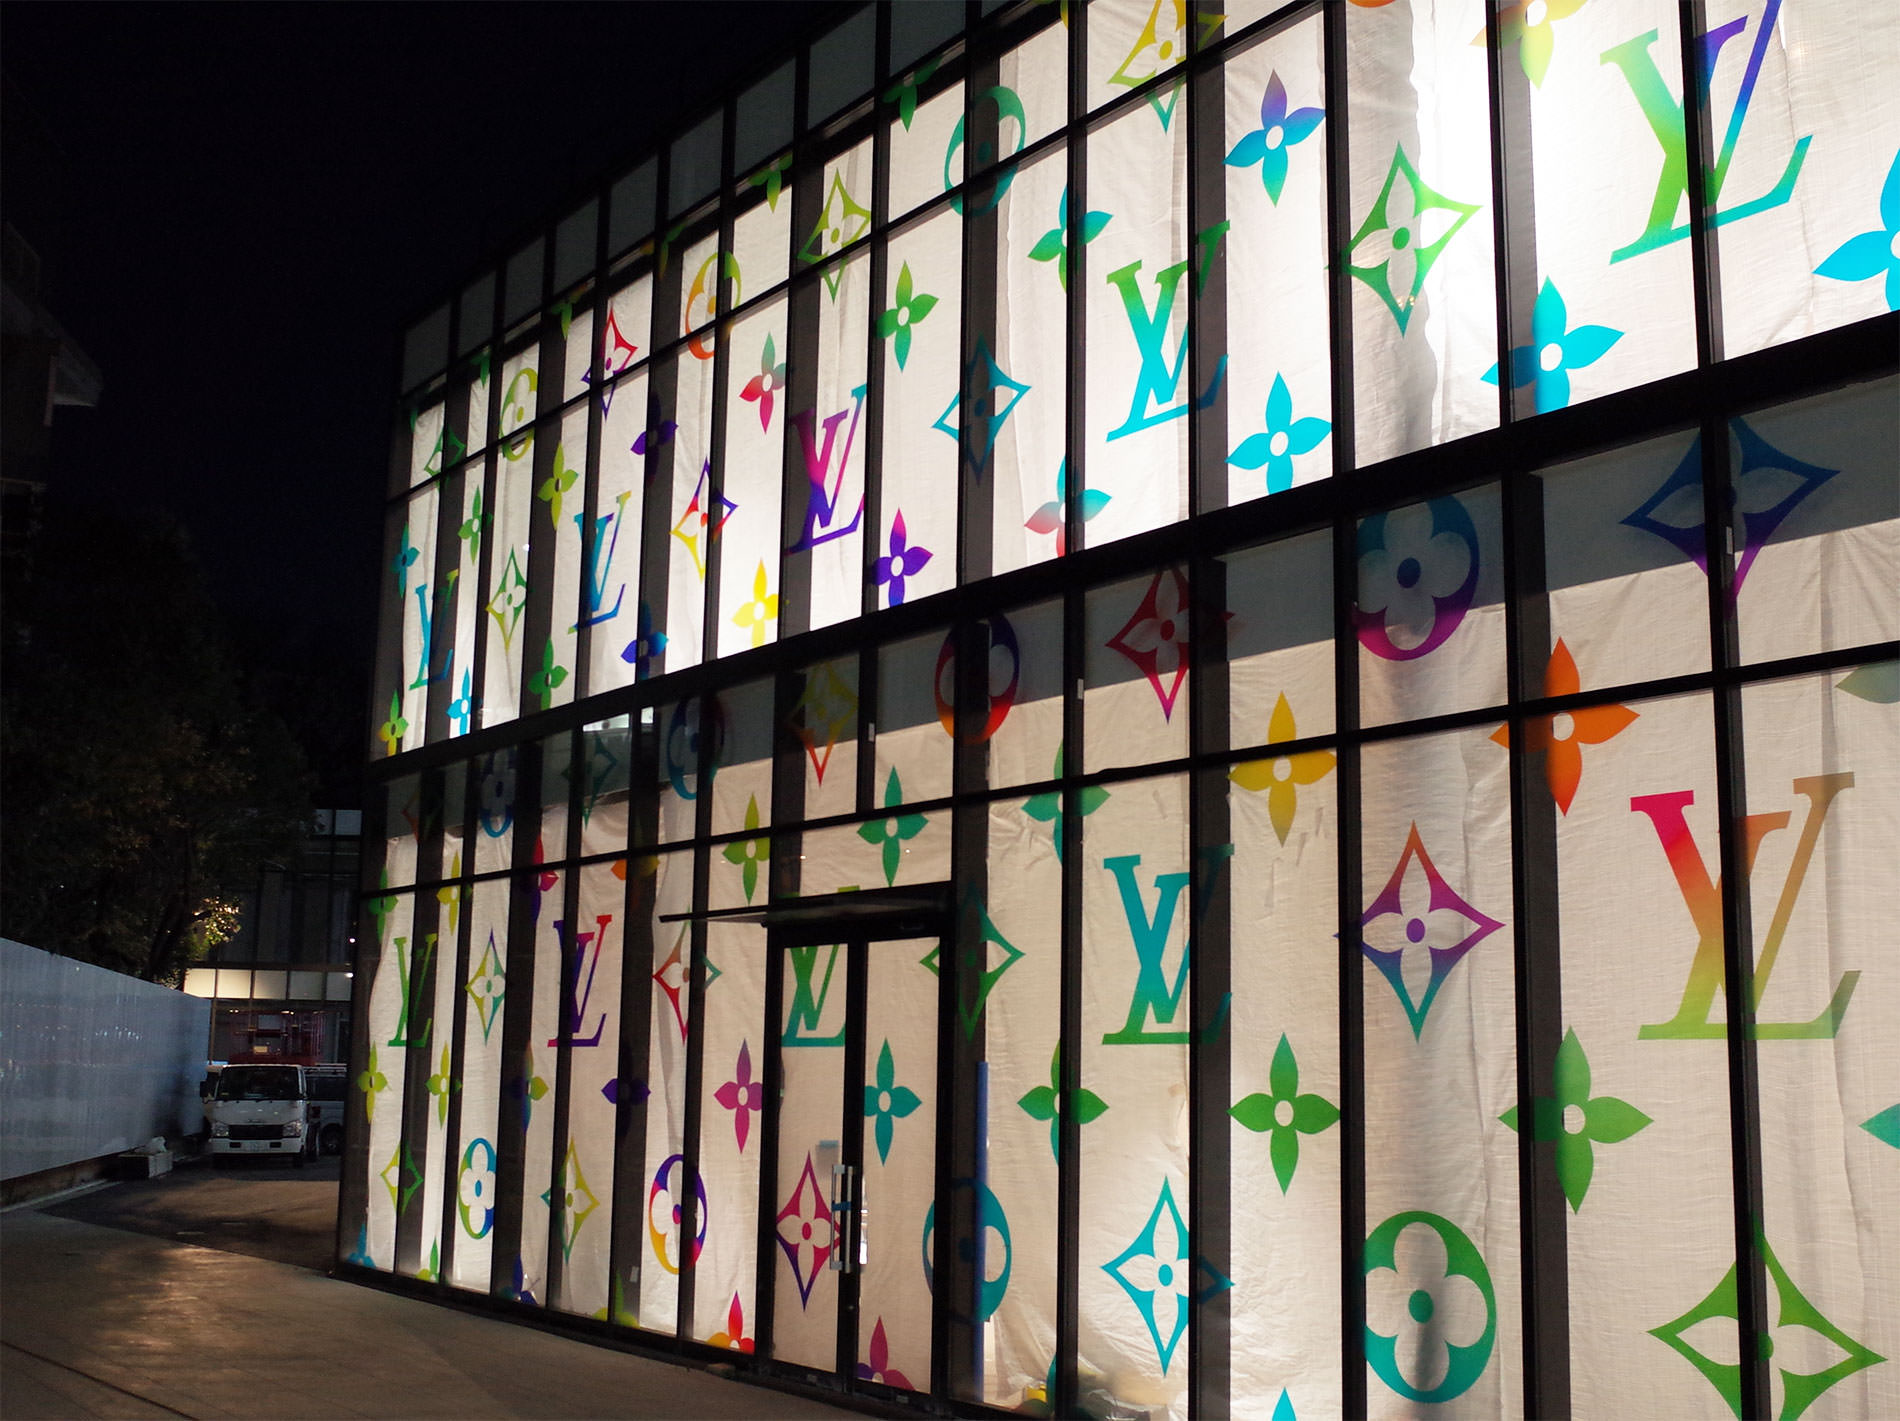 原宿駅前に建設中のルイ・ヴィトン マルチカラー / a new building of LOUIS VUITTON Multicolor in near the Harajuku station